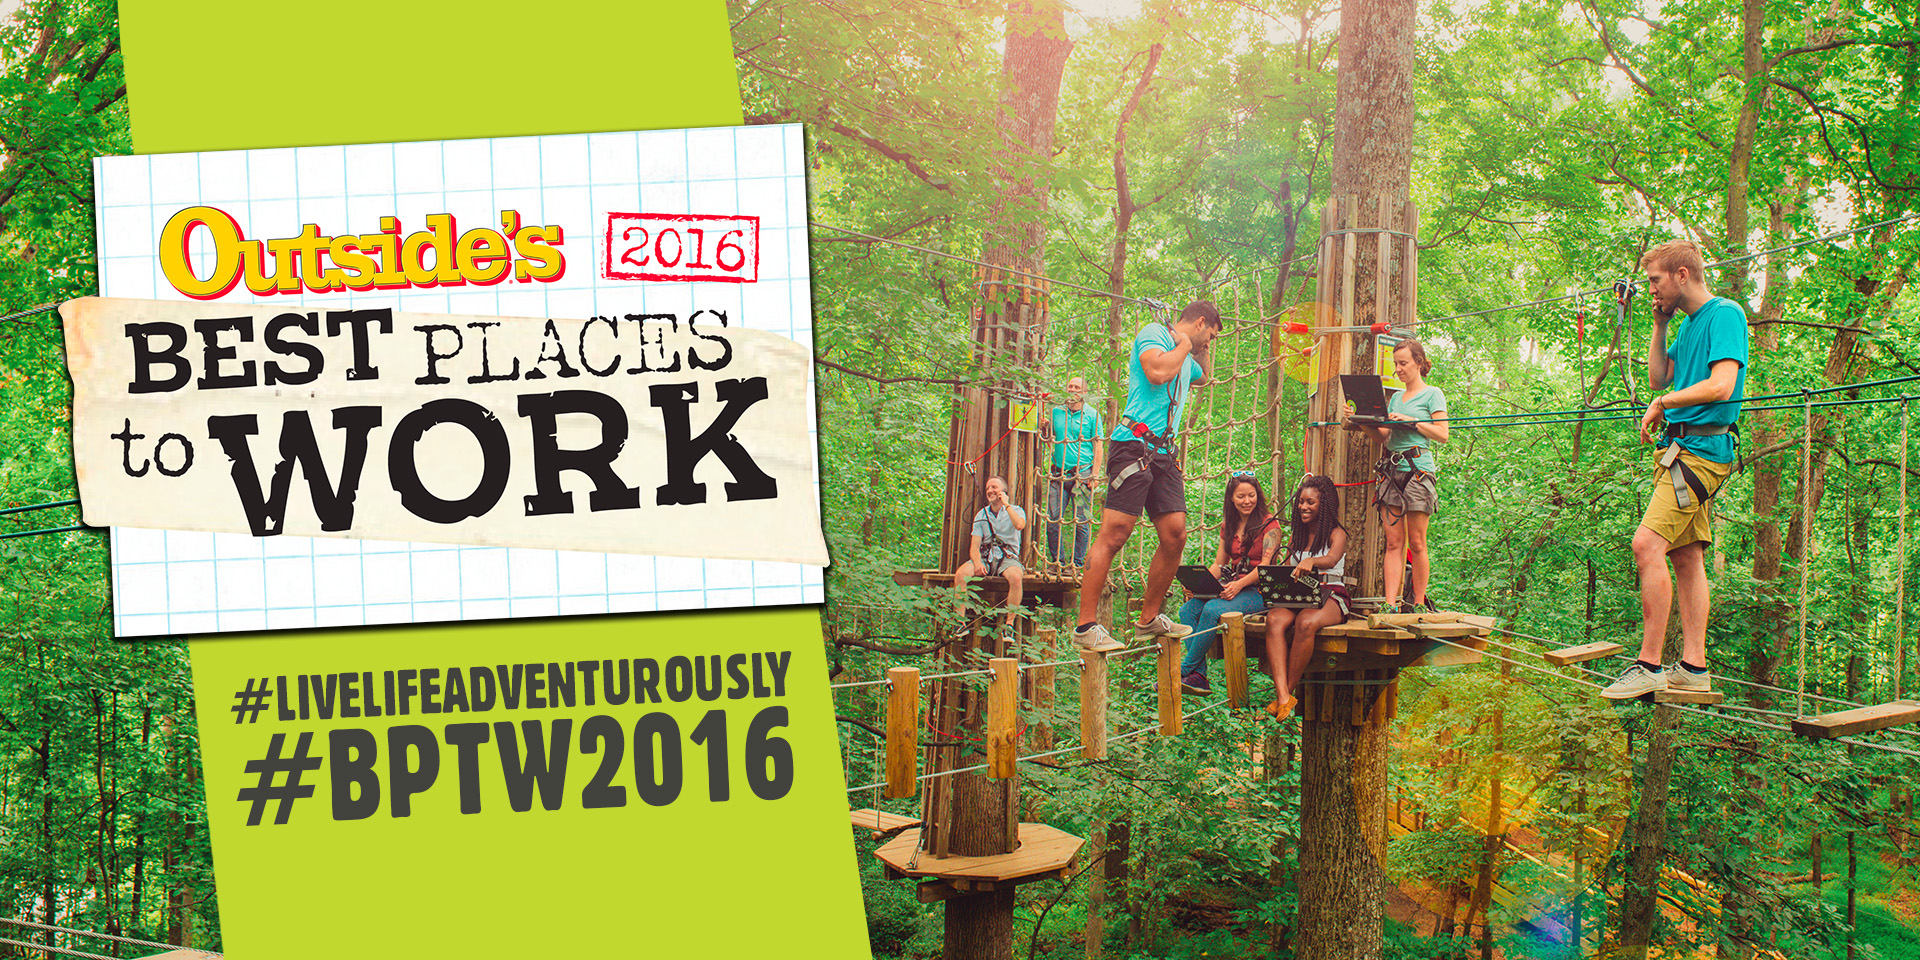 Created a campaign around Go Ape being recognized by Outside Magazine's Best Places to Work.